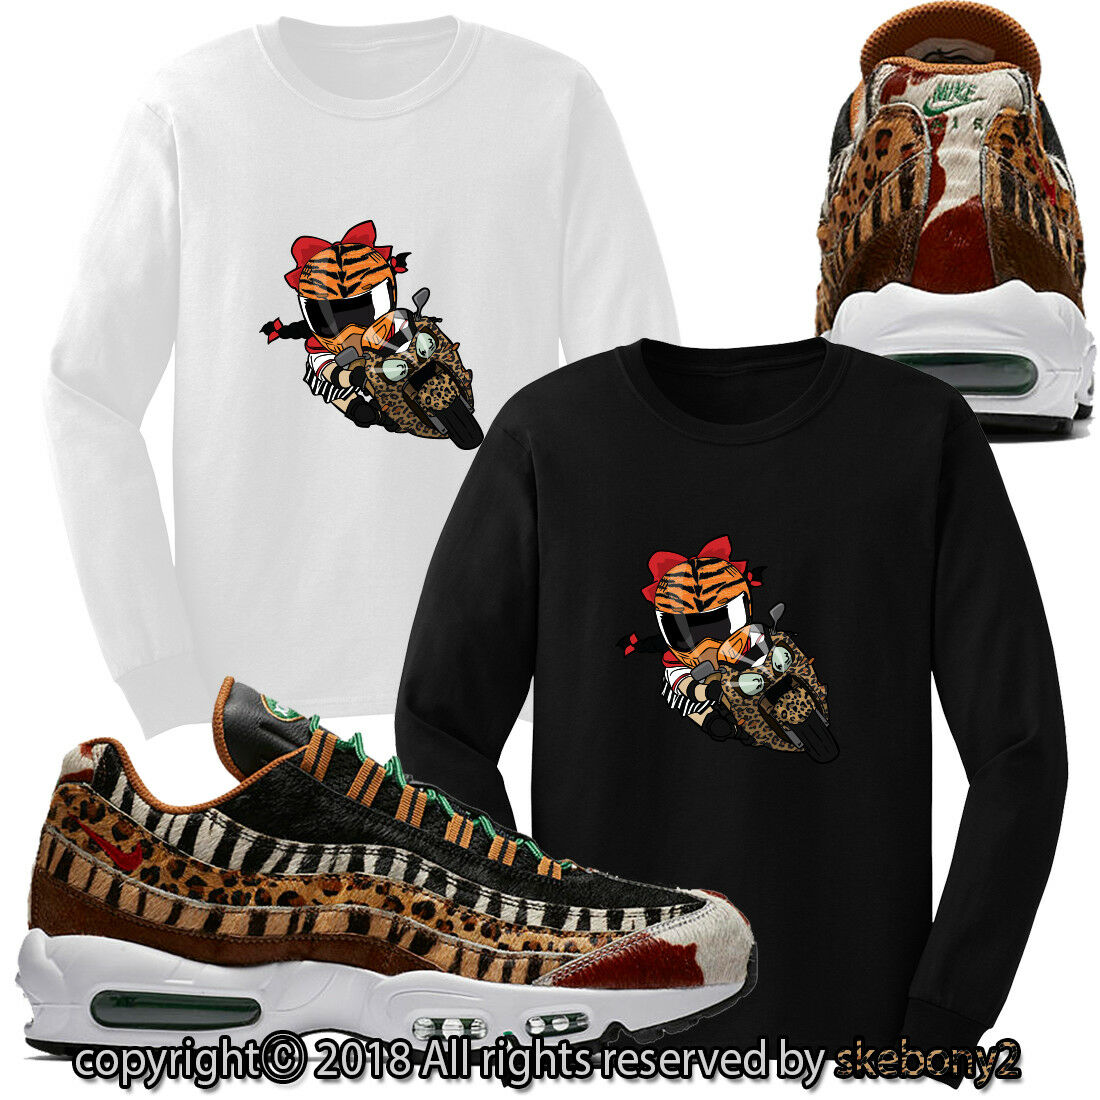 atmos x Nike Air Max 95 Animal Pack 2.0 KUND LONG SLEEVE T SHIRT AM95 1-1-7-L